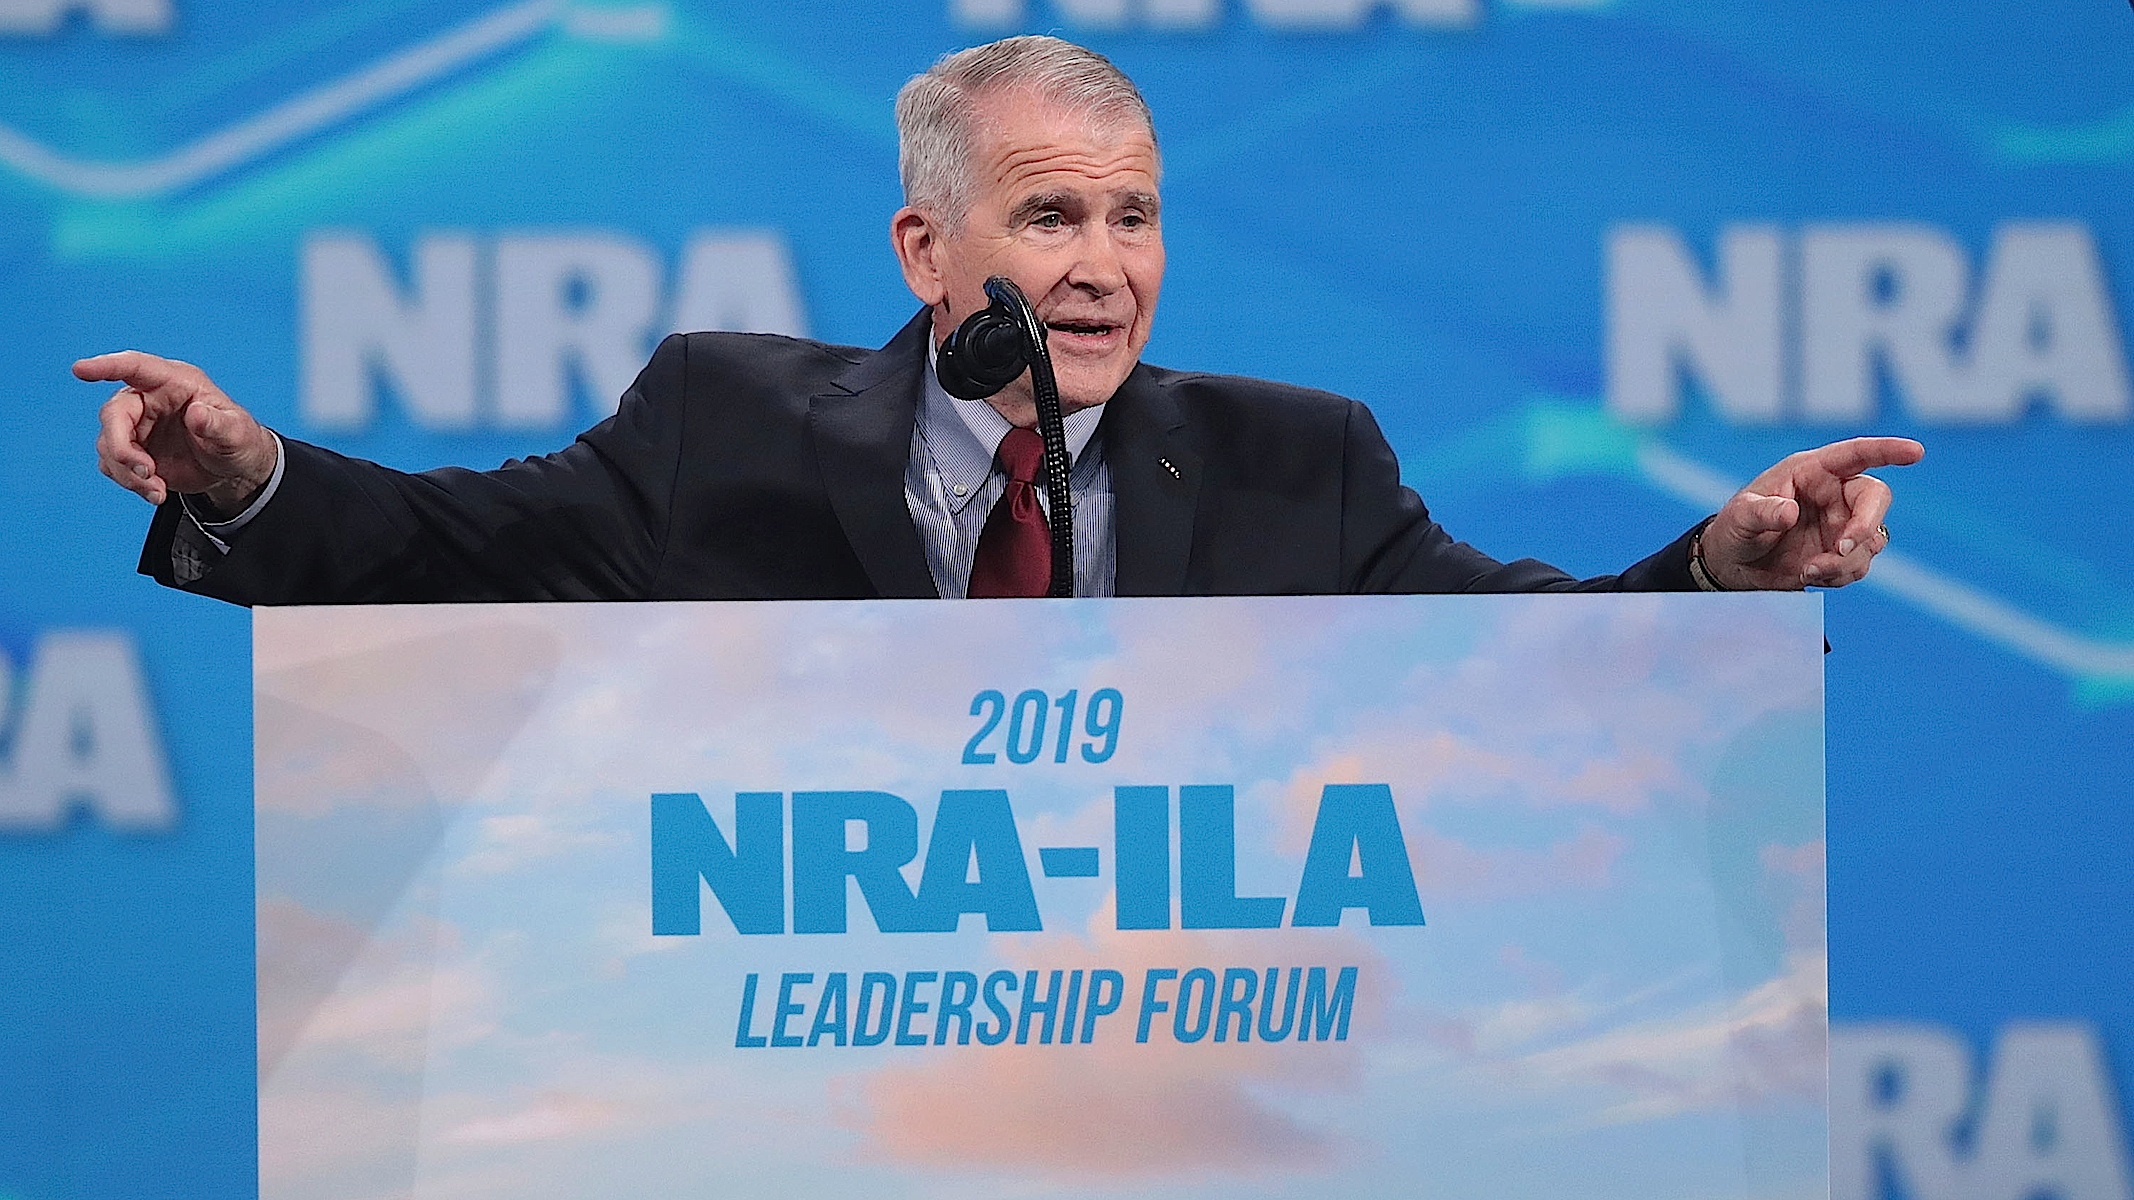 The NRA Is In Tatters, and Republican Leadership Is Worried Ahead of 2020